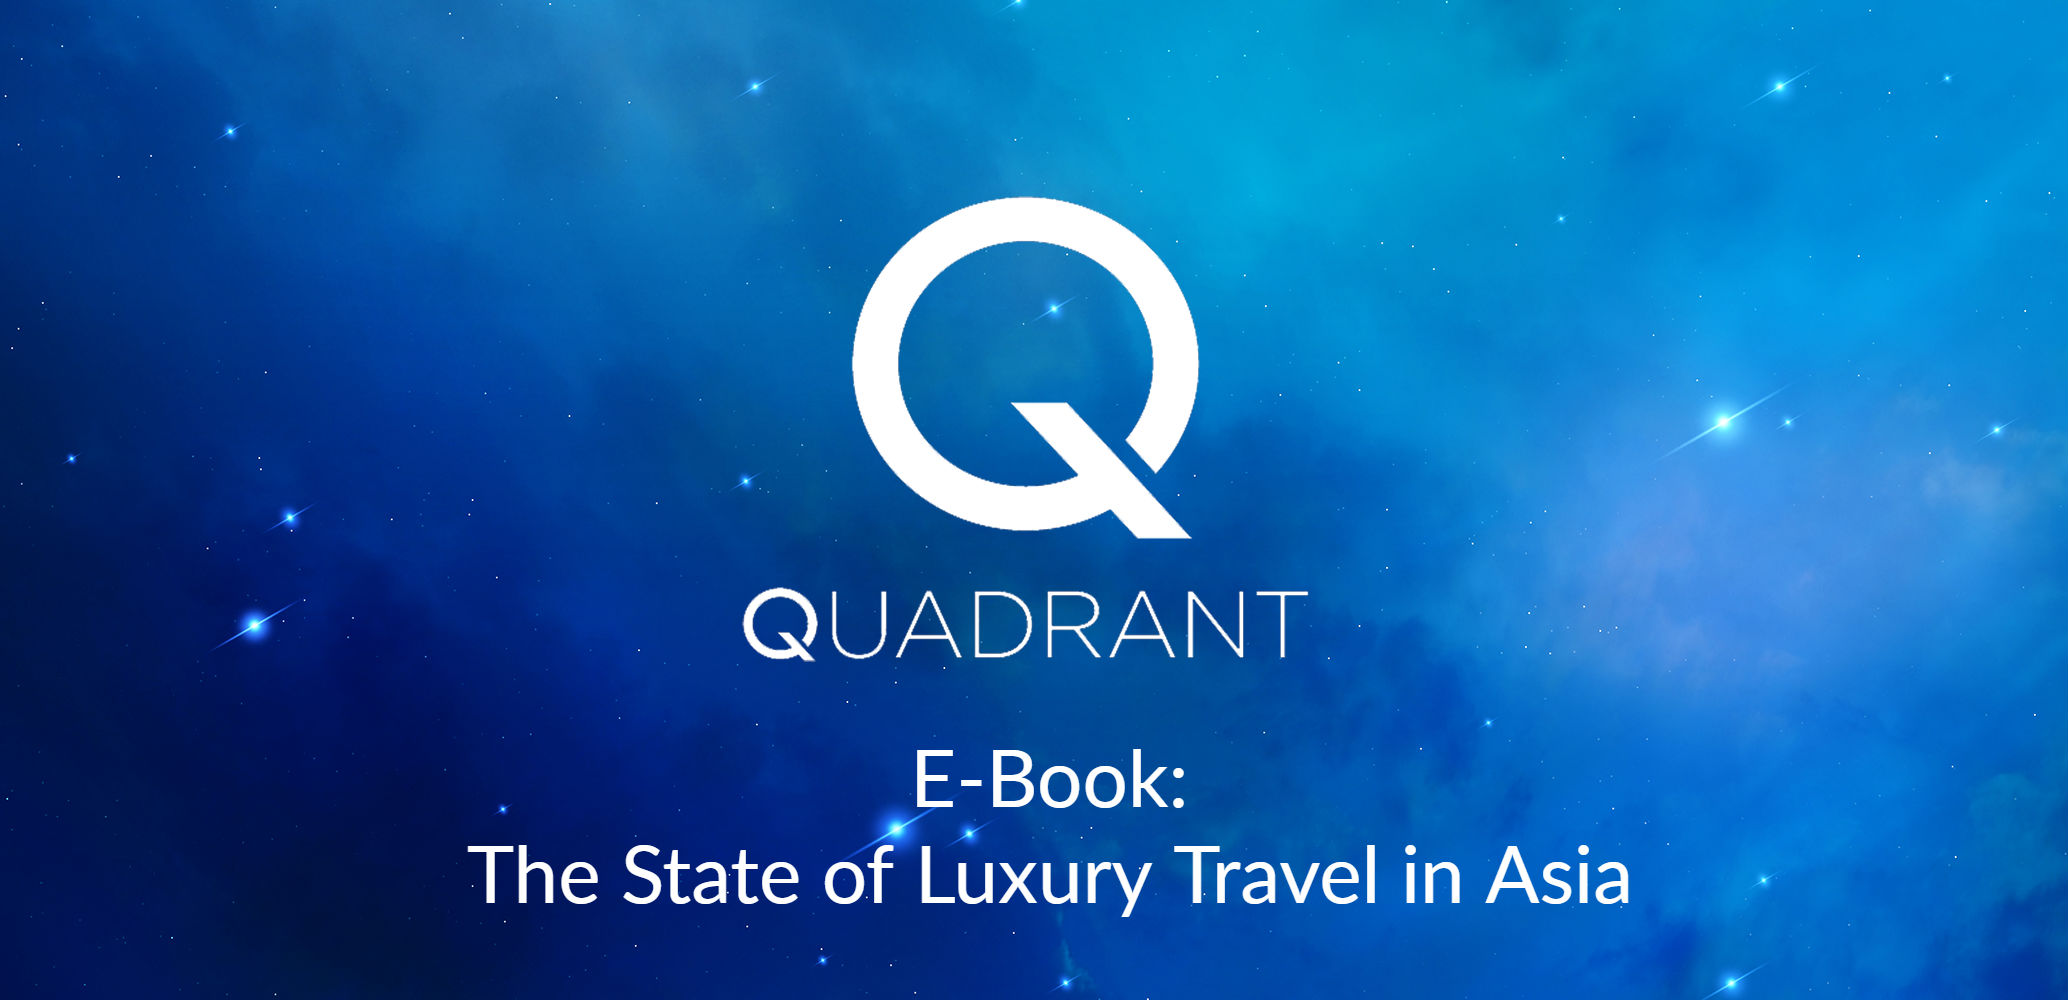 Banner Image - The State of Luxury Travel